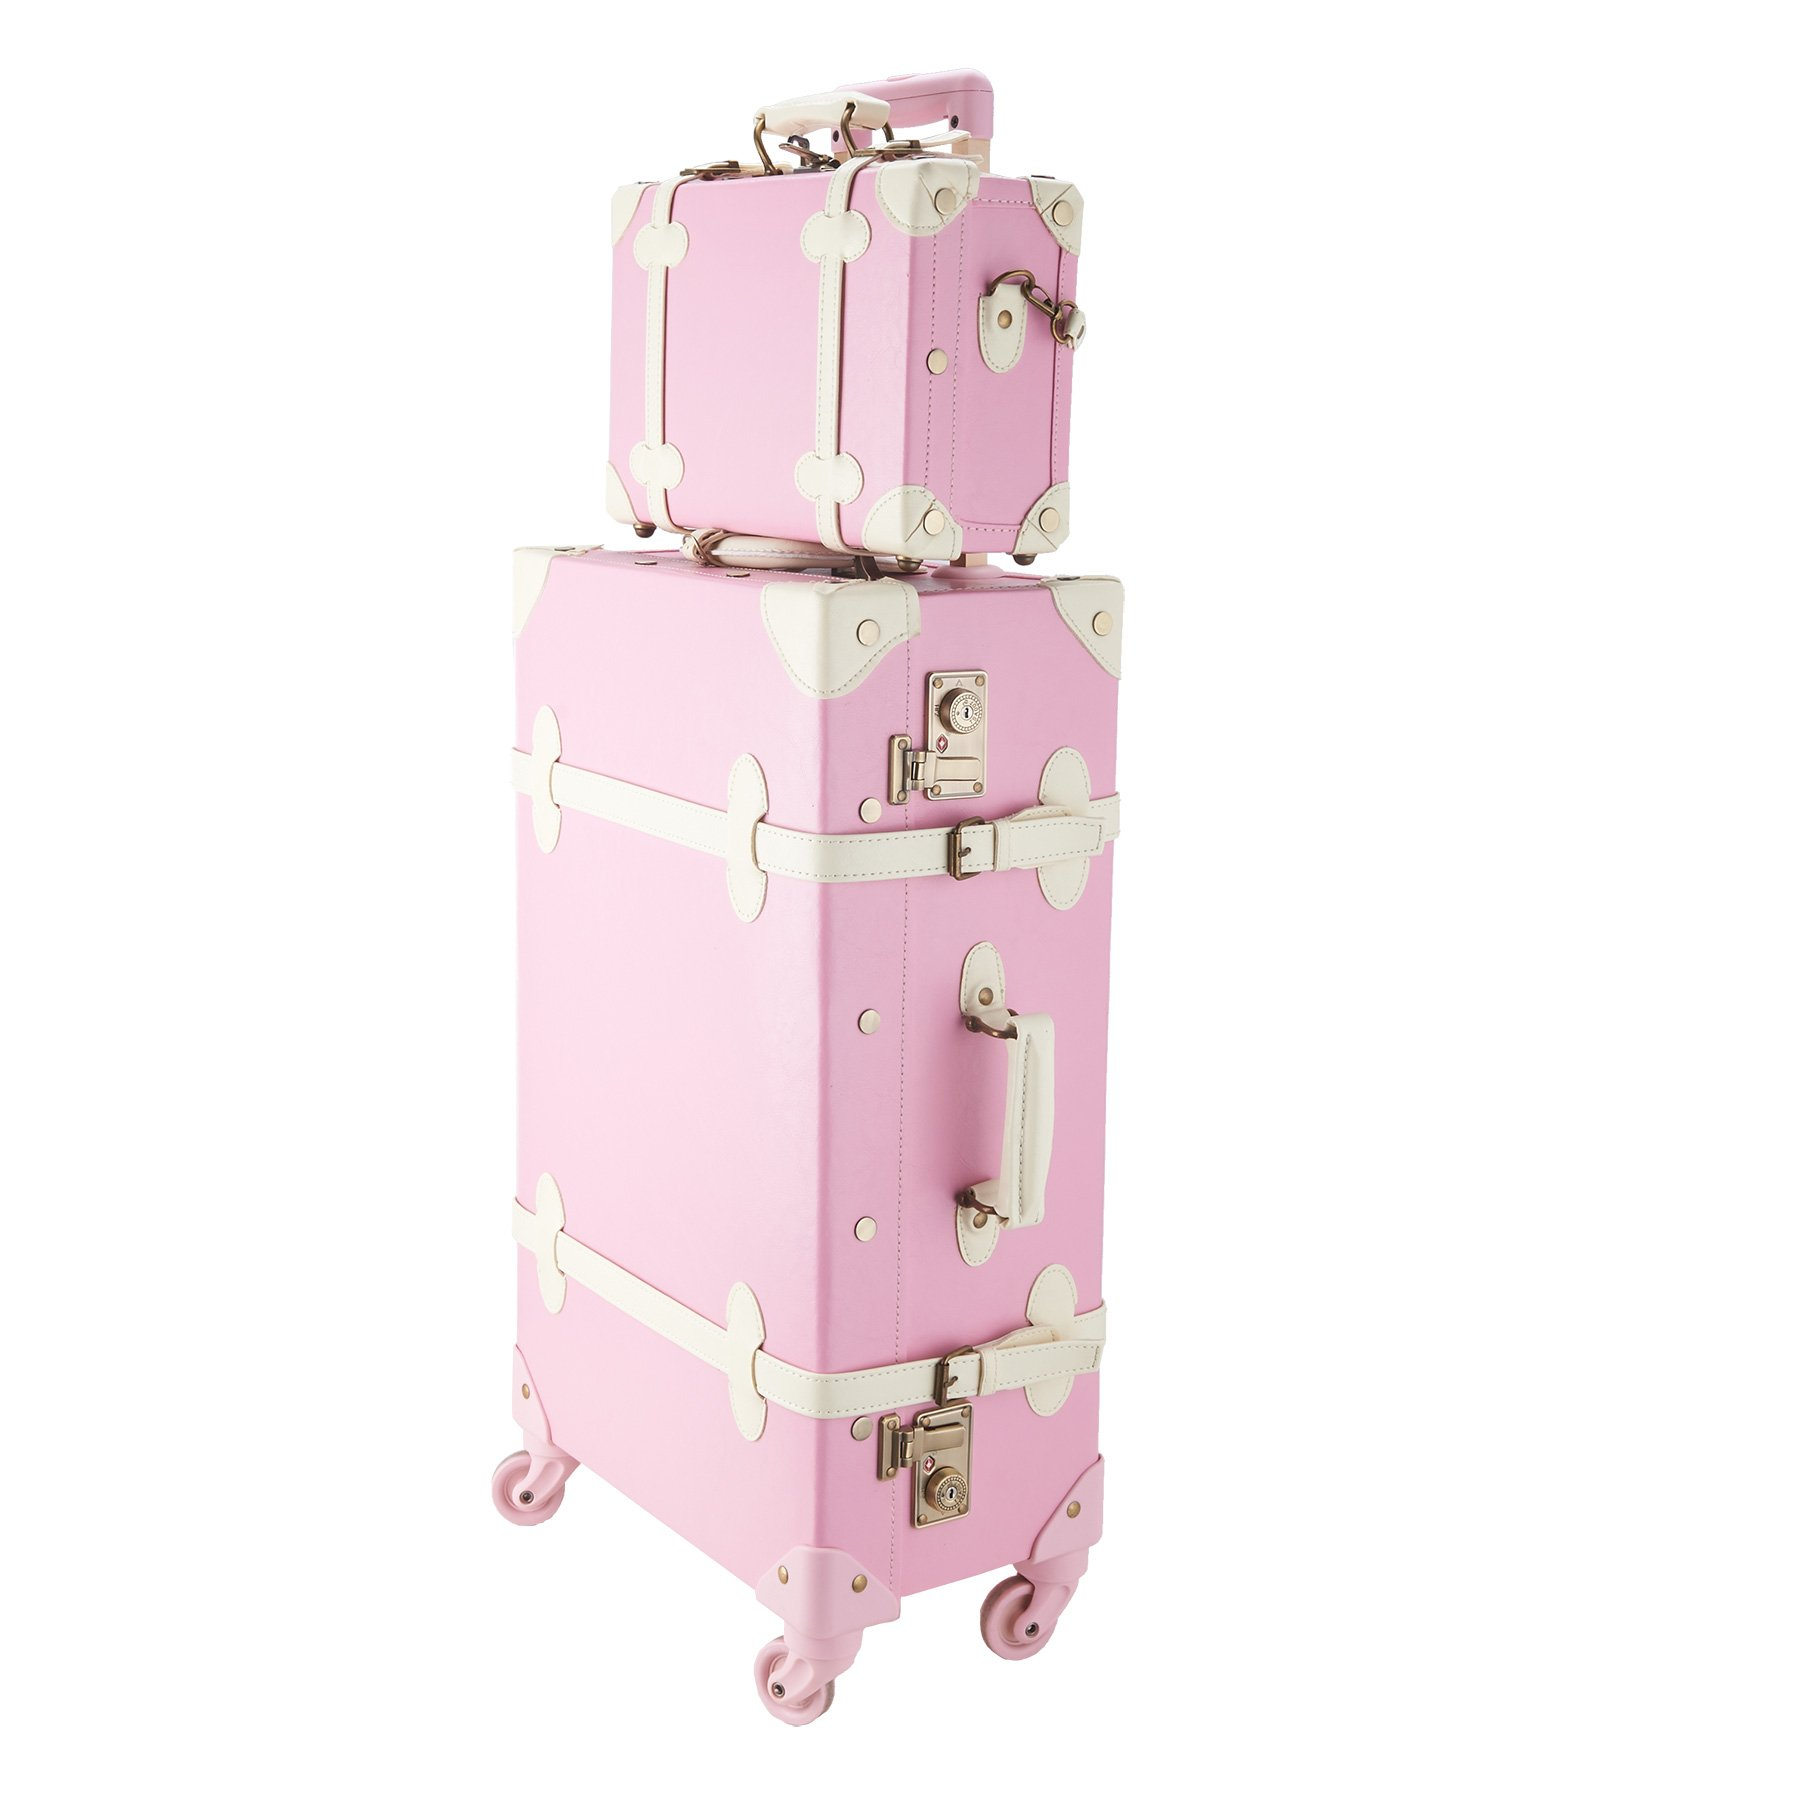 CO-Z Premium Vintage Luggage Sets 24'' Trolley Suitcase and 12'' Hand Bag Set with TSA Locks (Pink + Beige) (12'' +24'' Pink)